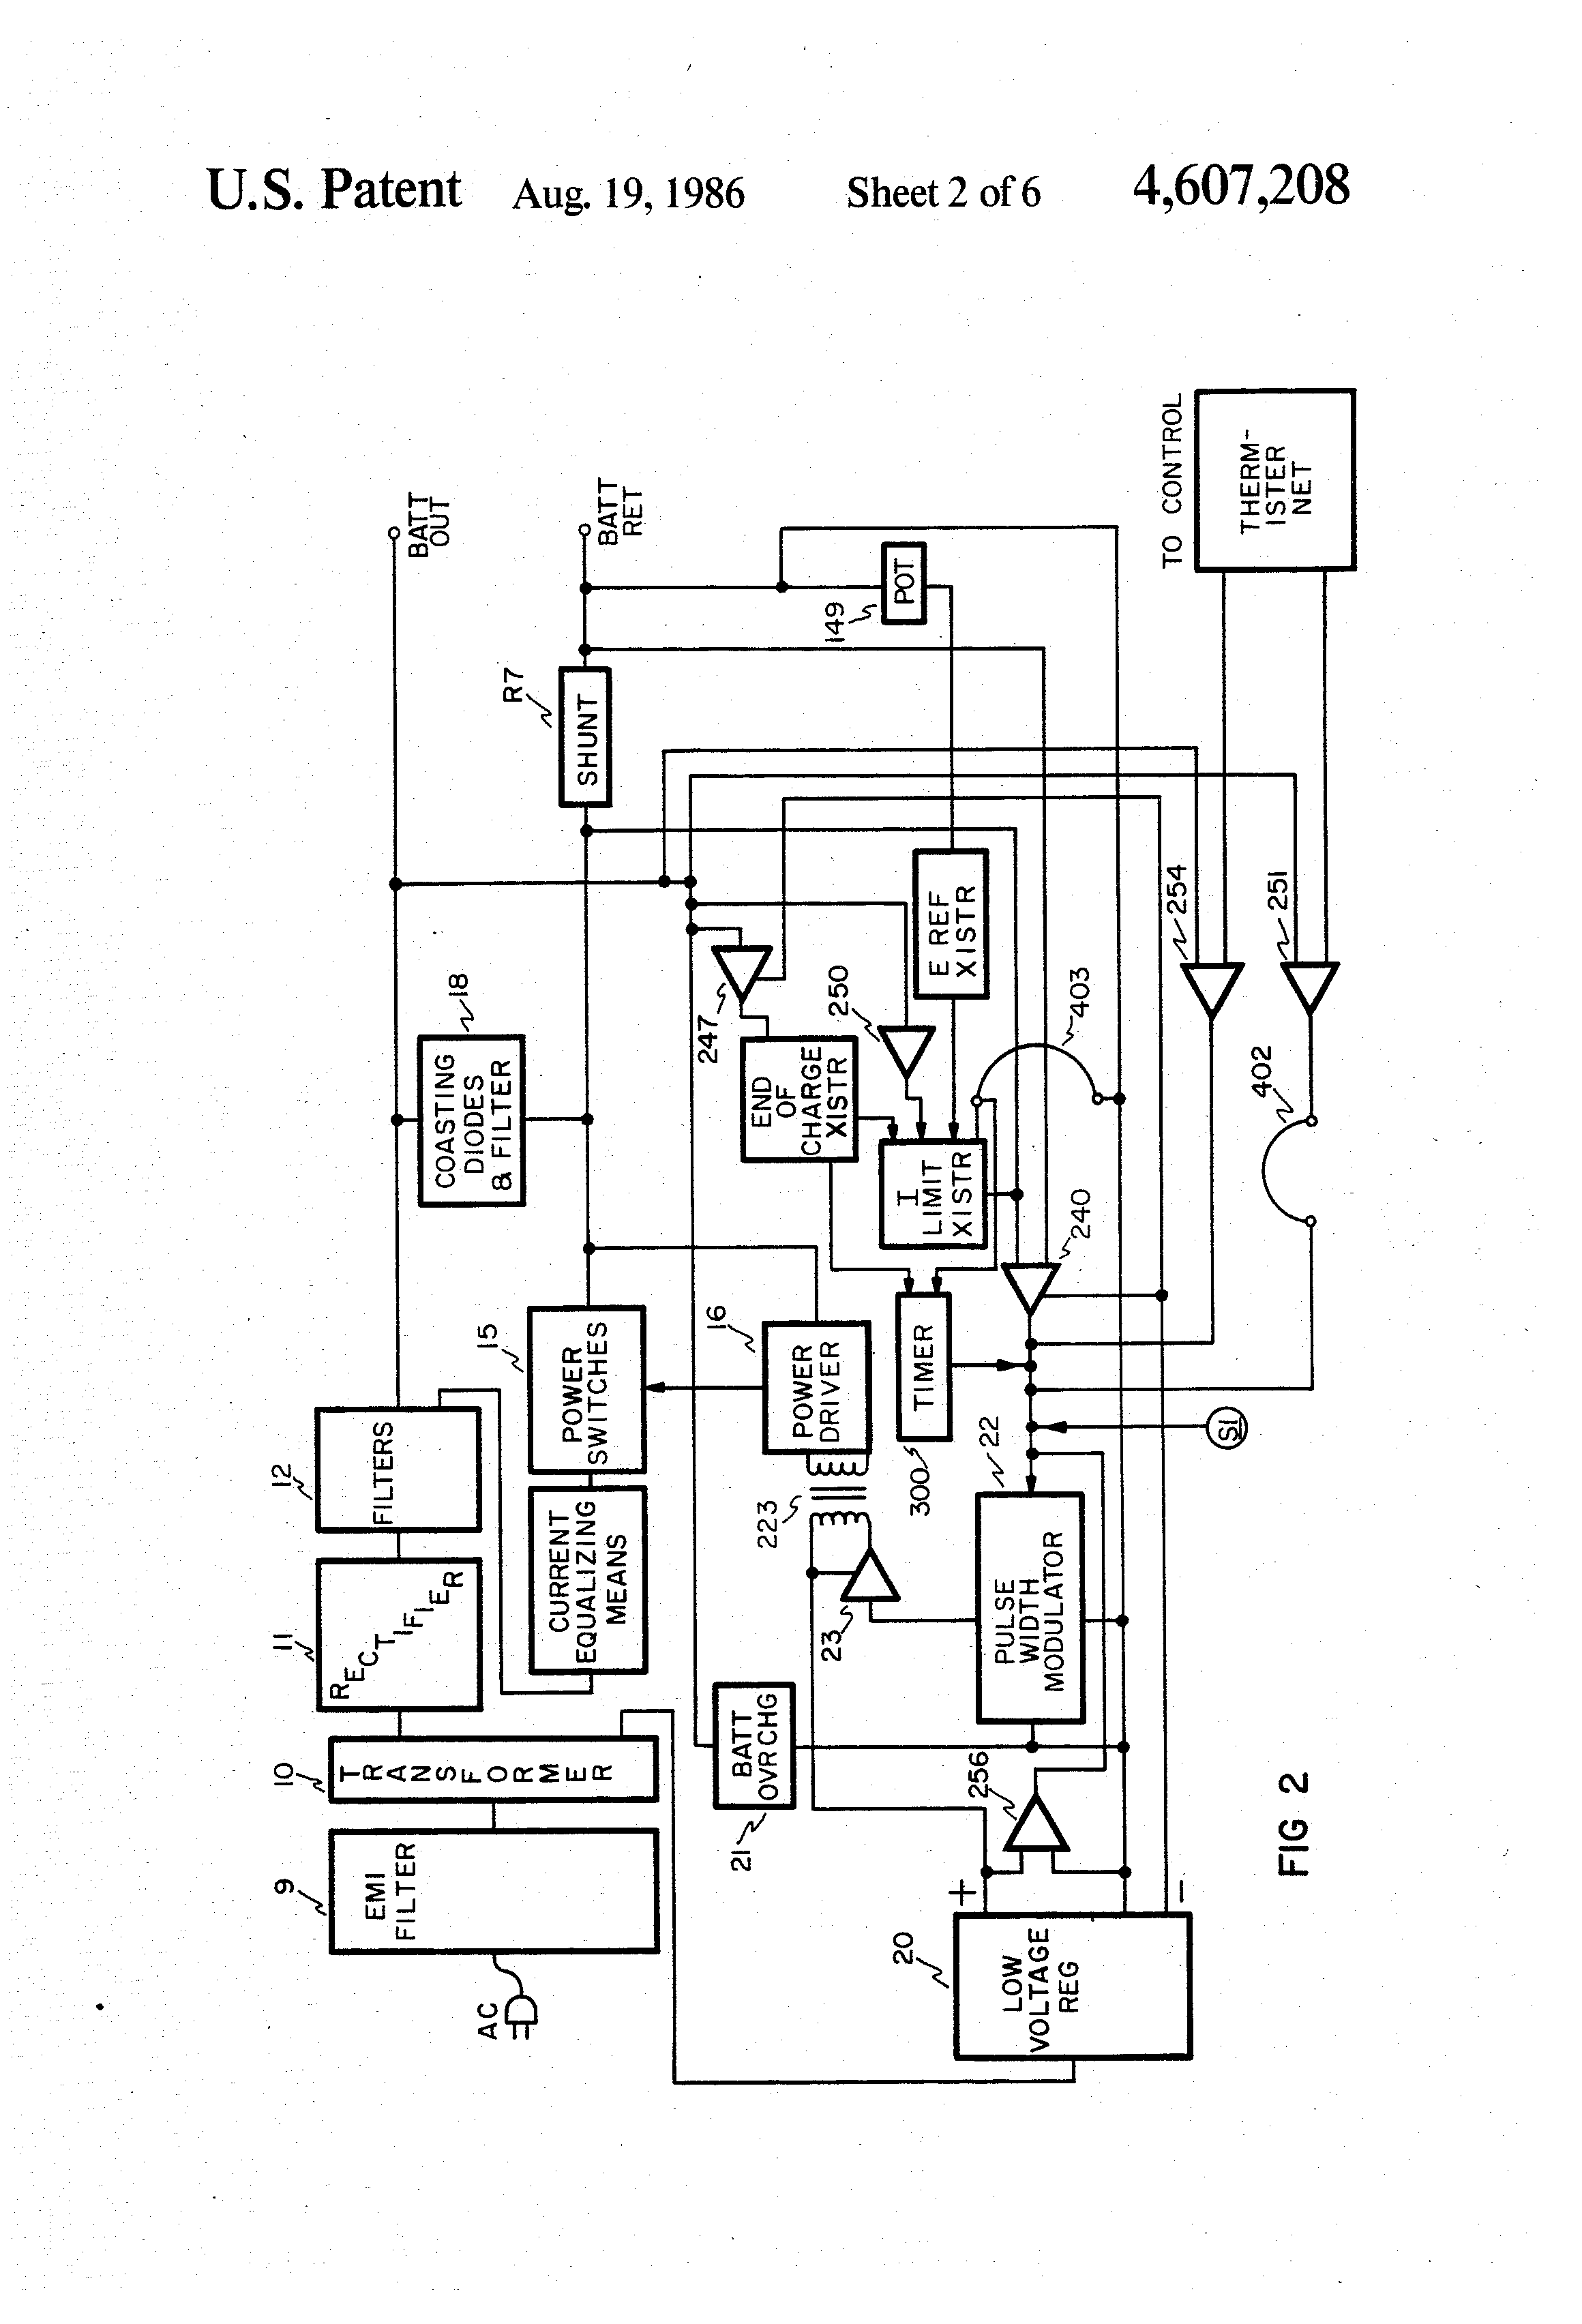 US4607208 2 wiring diagram for schumacher battery charger circuit and schumacher se 2158 wiring diagram at gsmportal.co